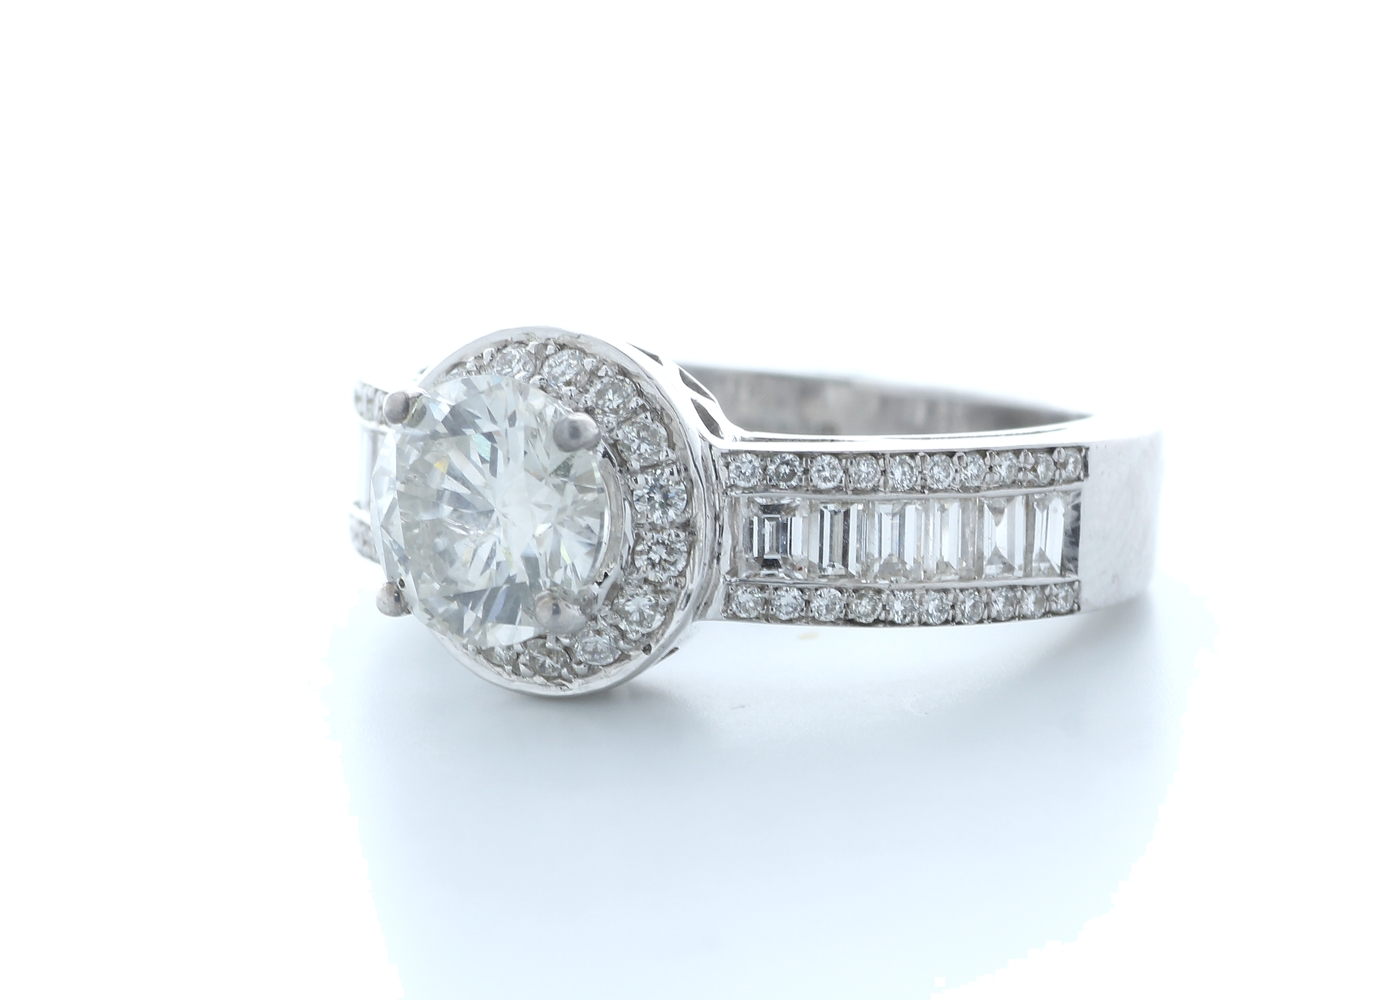 18ct White Gold Single Stone With Halo Setting Ring 2.62 (1.22) Carats - Image 2 of 5